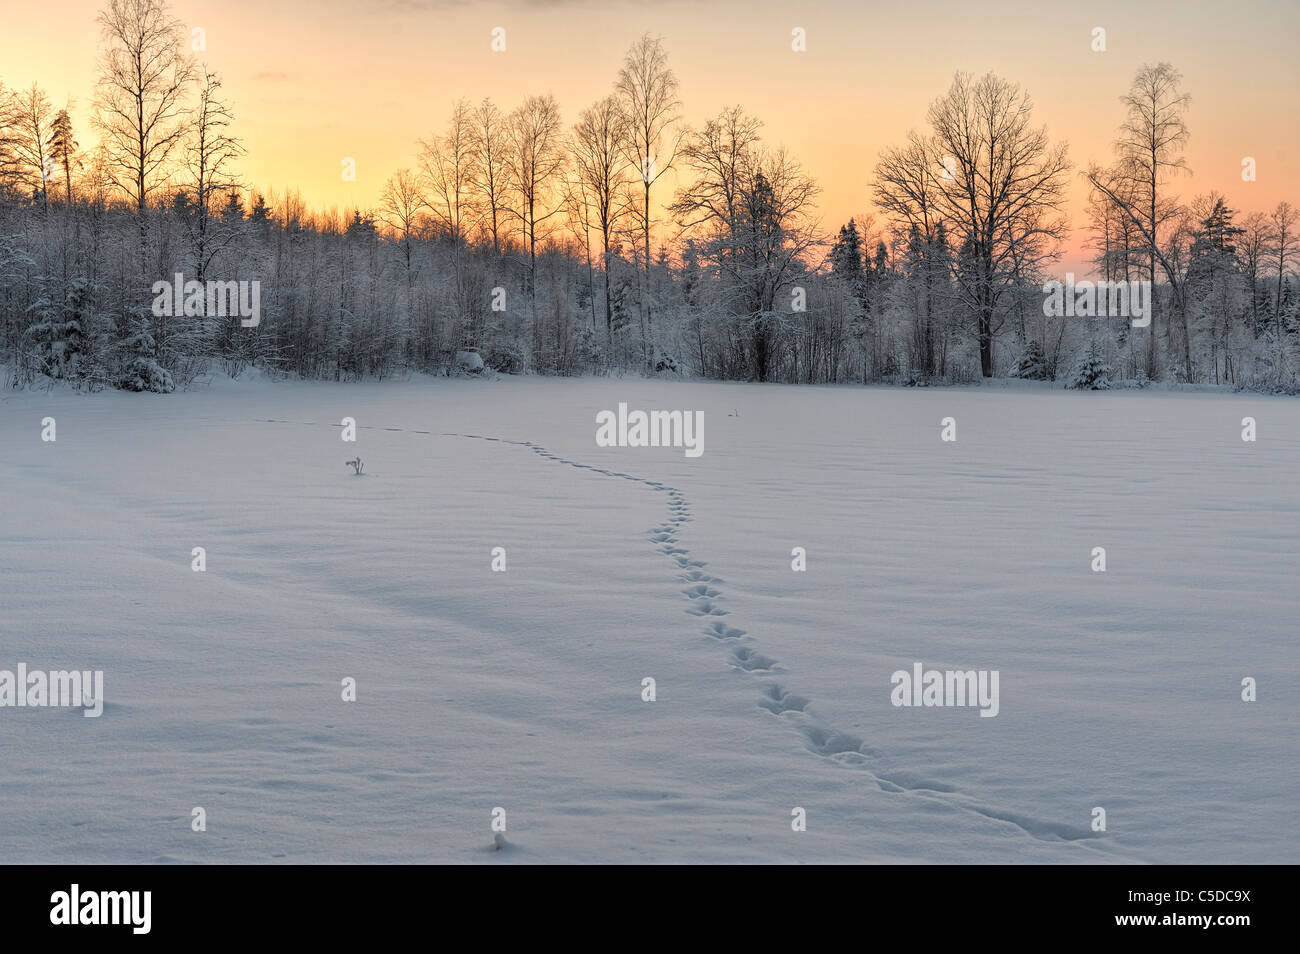 Scenic and peaceful winter view of animal tracks in the snow against frosted trees and sky at dusk Stock Photo